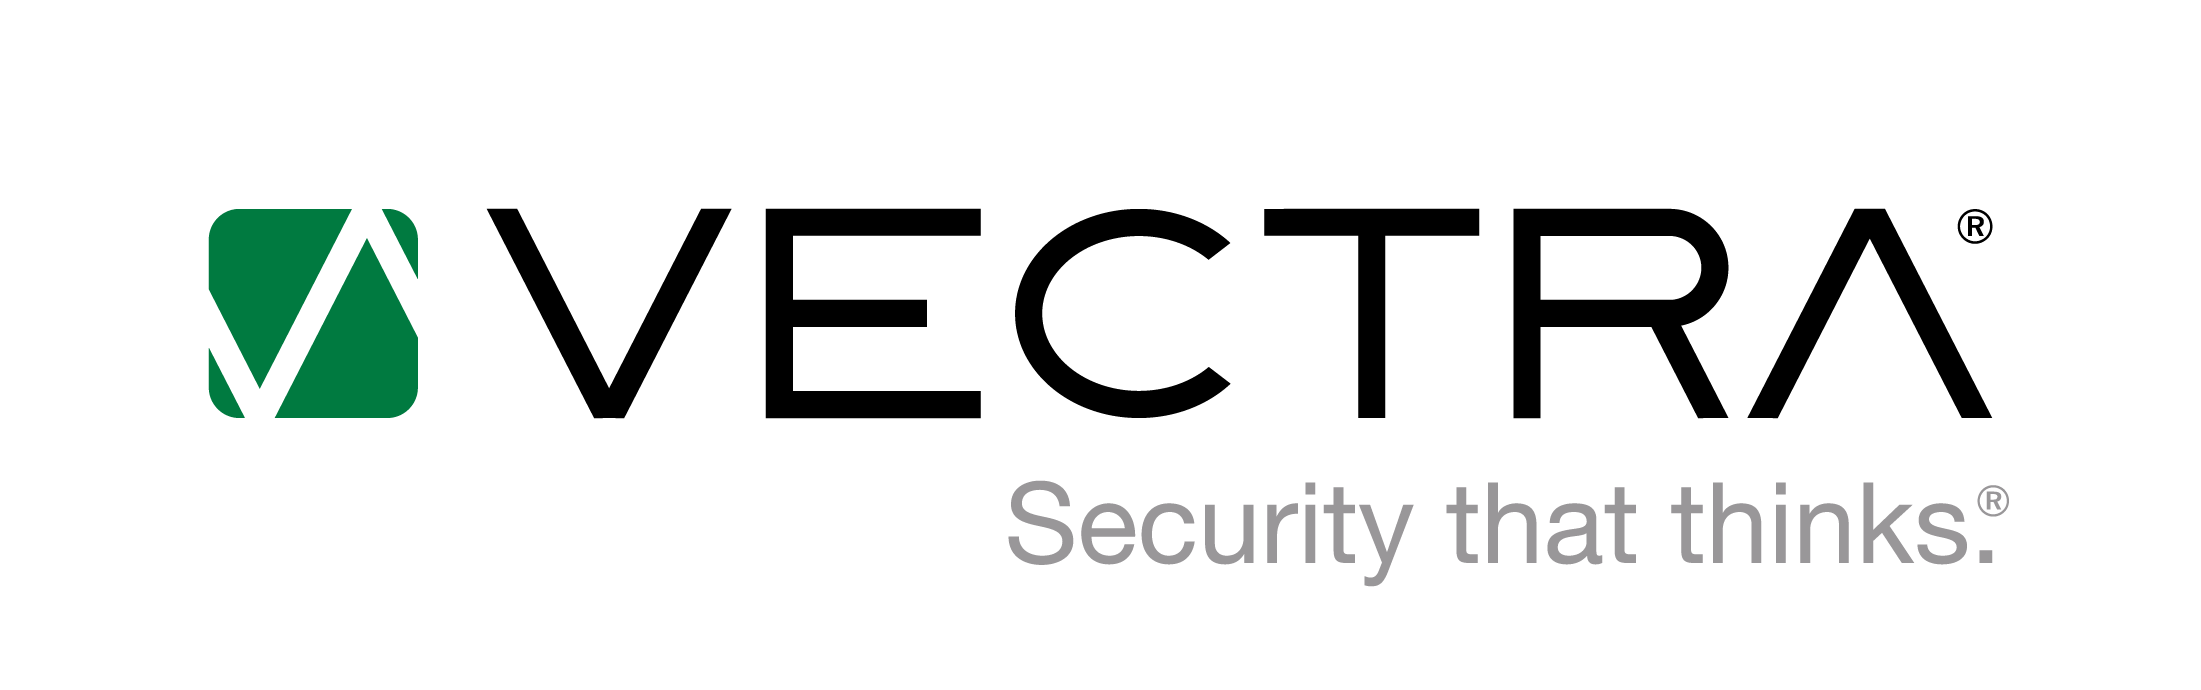 Cybersecurity leader Vectra establishes operations in Asia-Pacific to address growing demand for network detection and response in the cloud